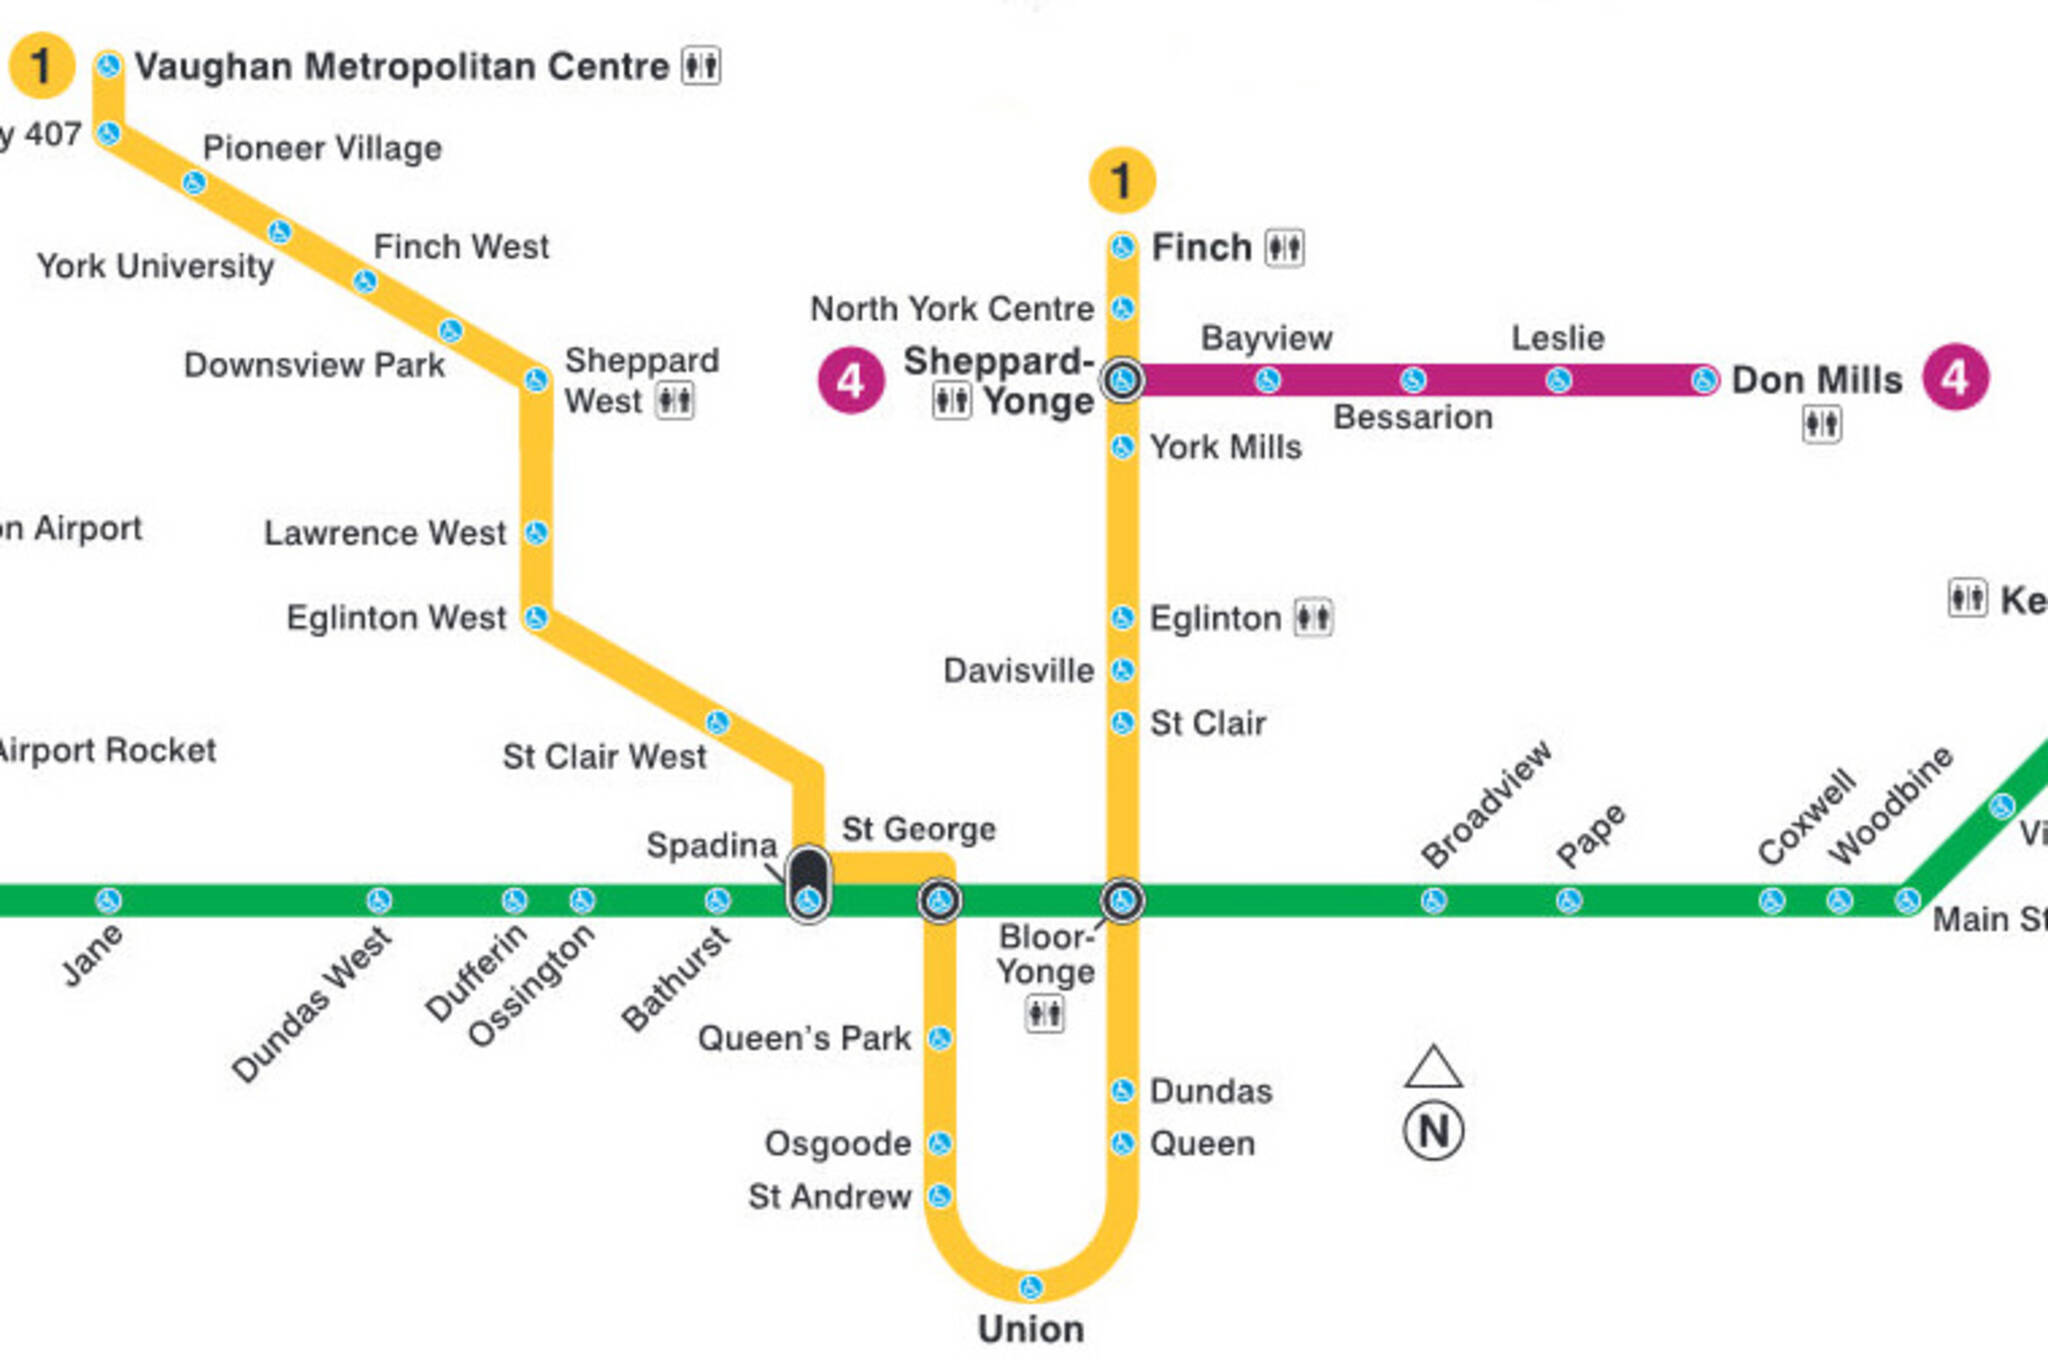 How To Design A Subway Map.Someone Created A Ttc Subway Map With Only Accessible Stations